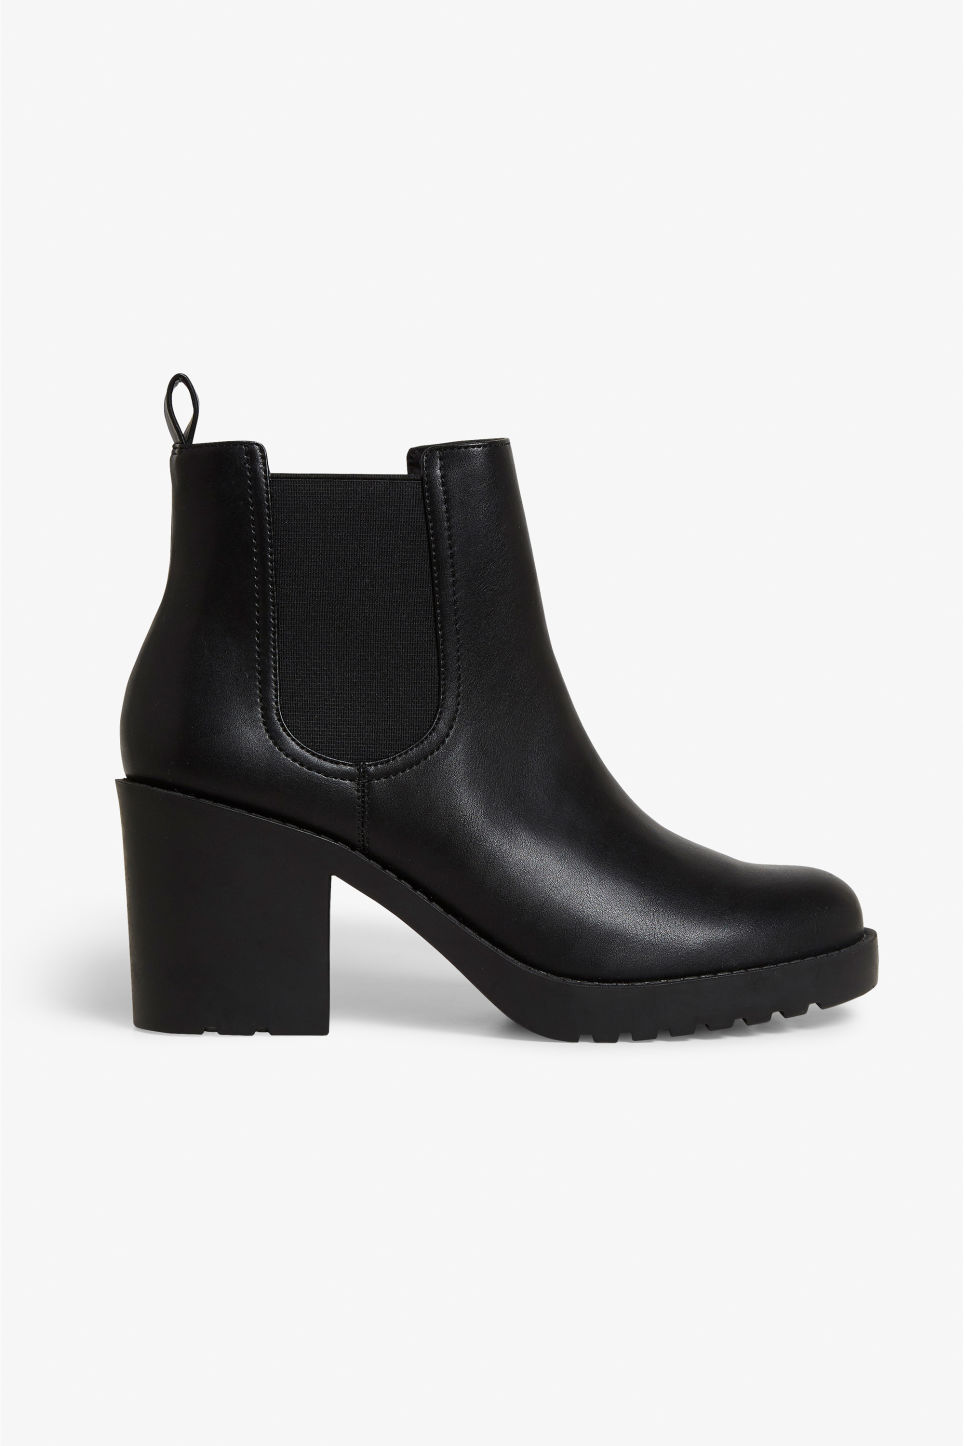 Detailed image of Monki stretchy ankle boots in black